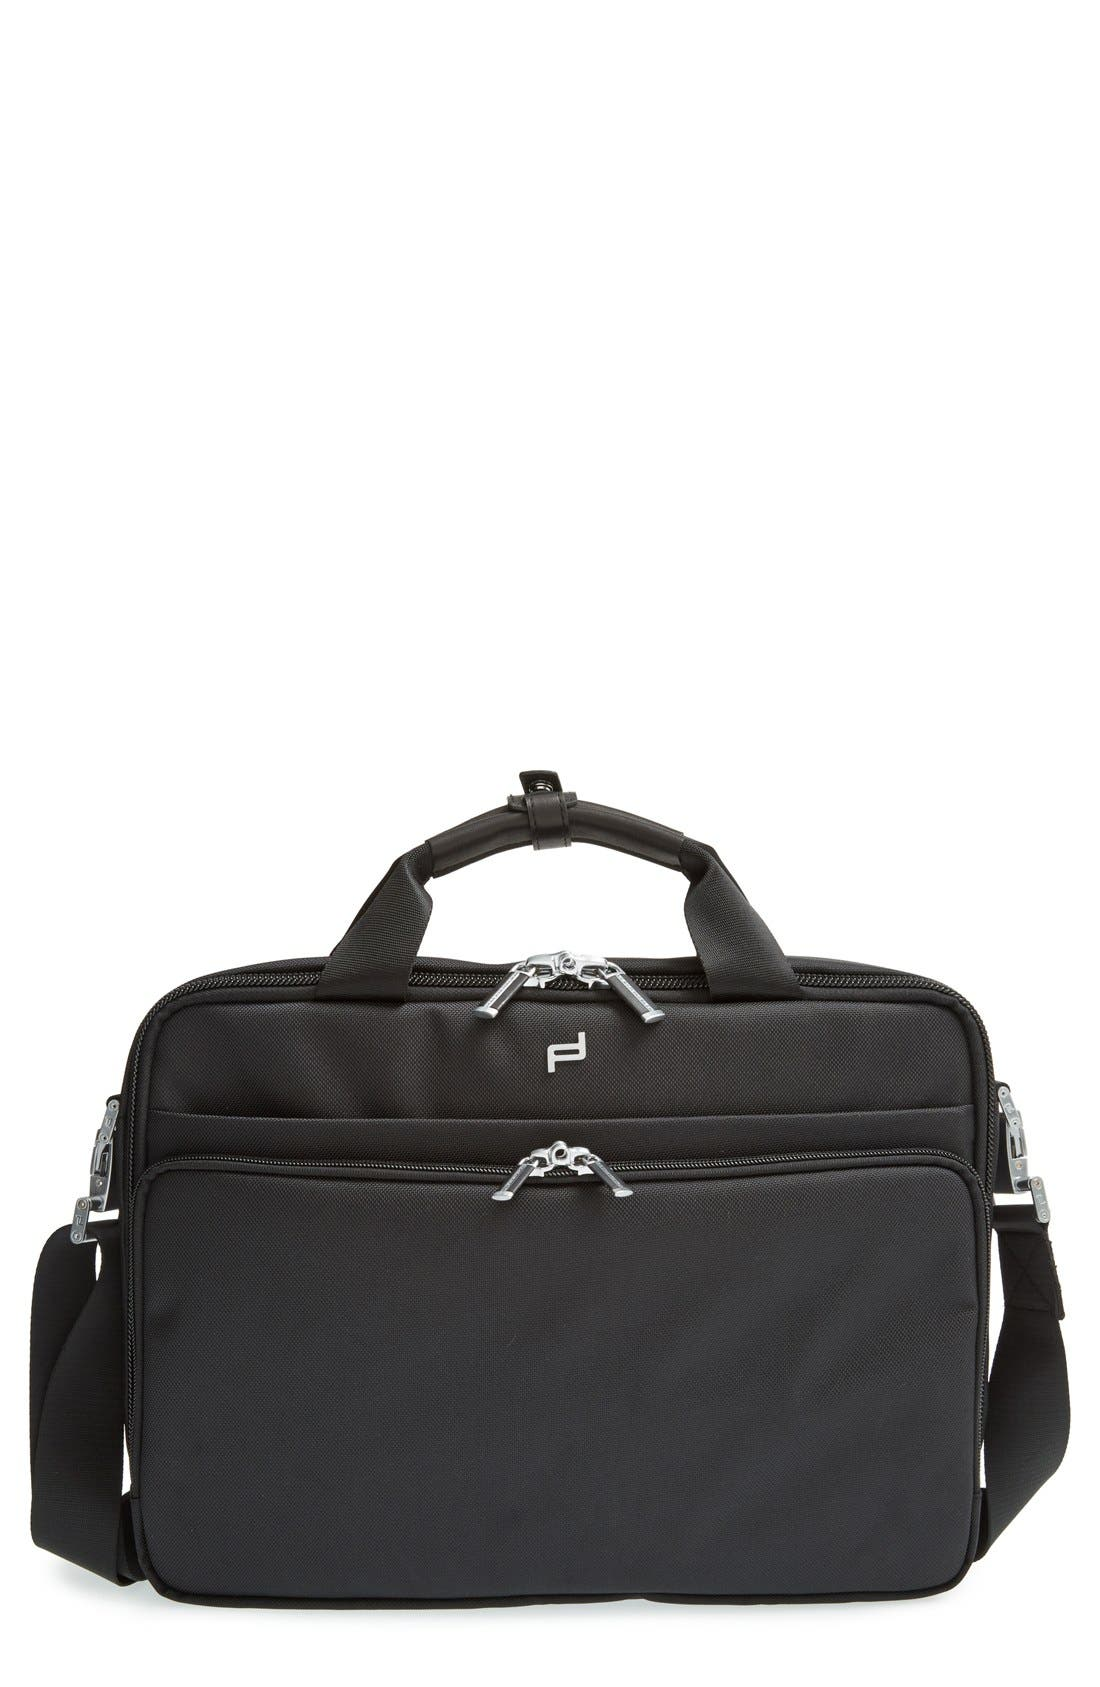 Porsche Design 'Roadster 3.0' Briefcase